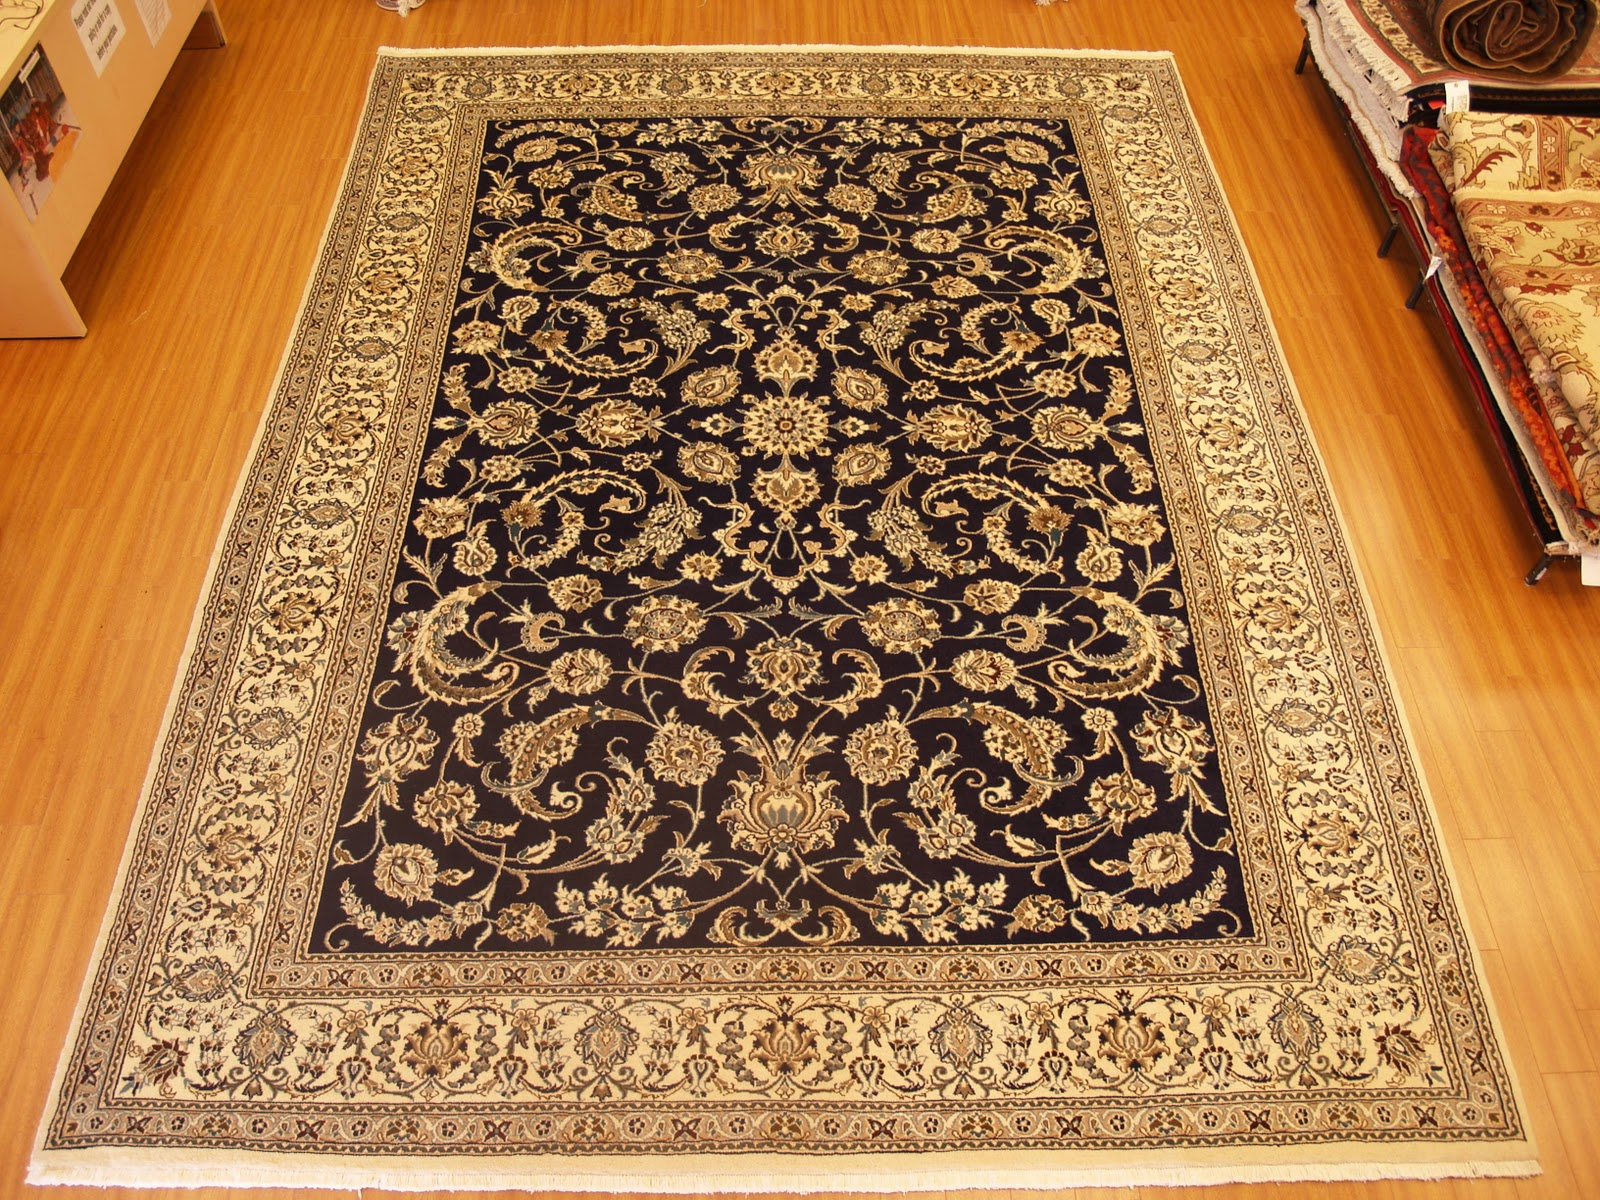 Latest Trendy Collection Of Carpets